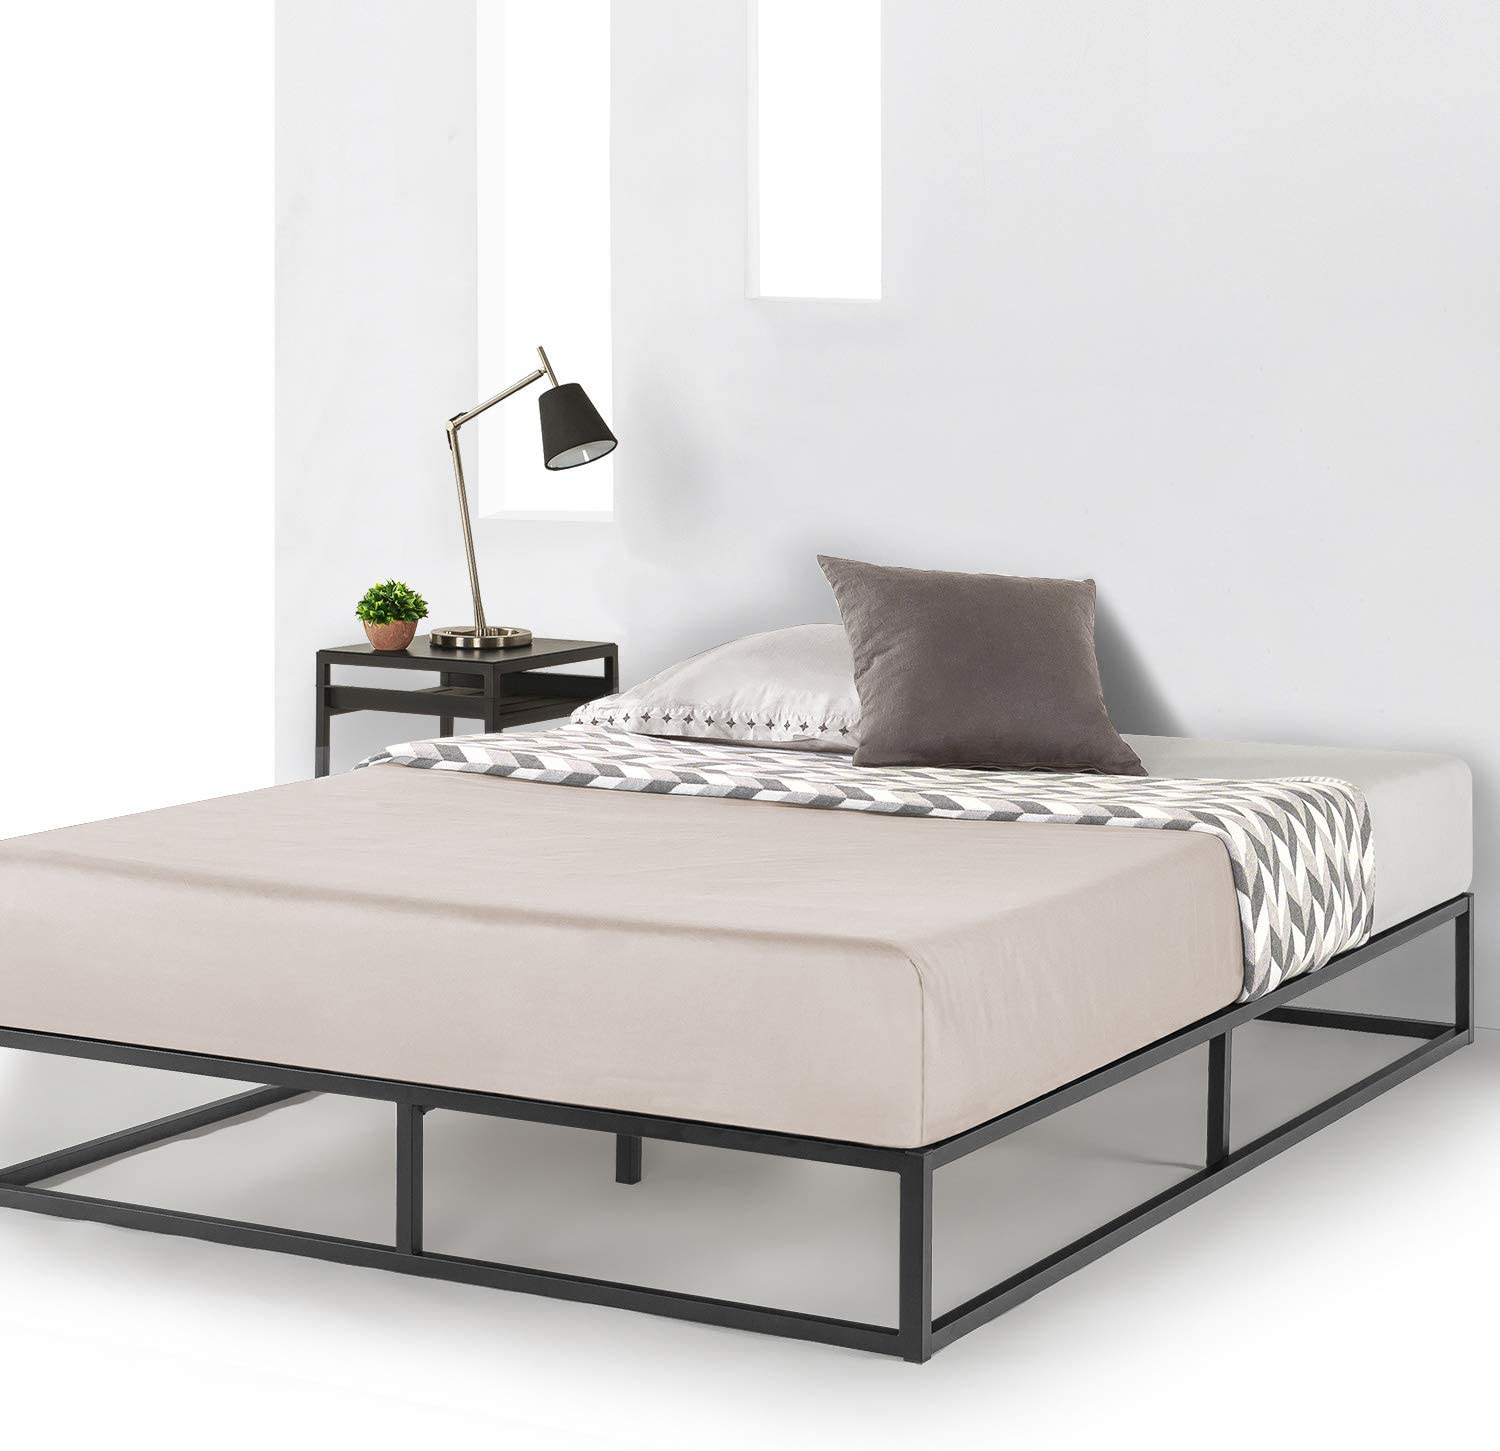 Mellow 10 Inch Metal Platform Bed Frame Type W Classic Wooden Slat Support Mattress Foundation No Box Spring Needed Queen Black Furniture Decor